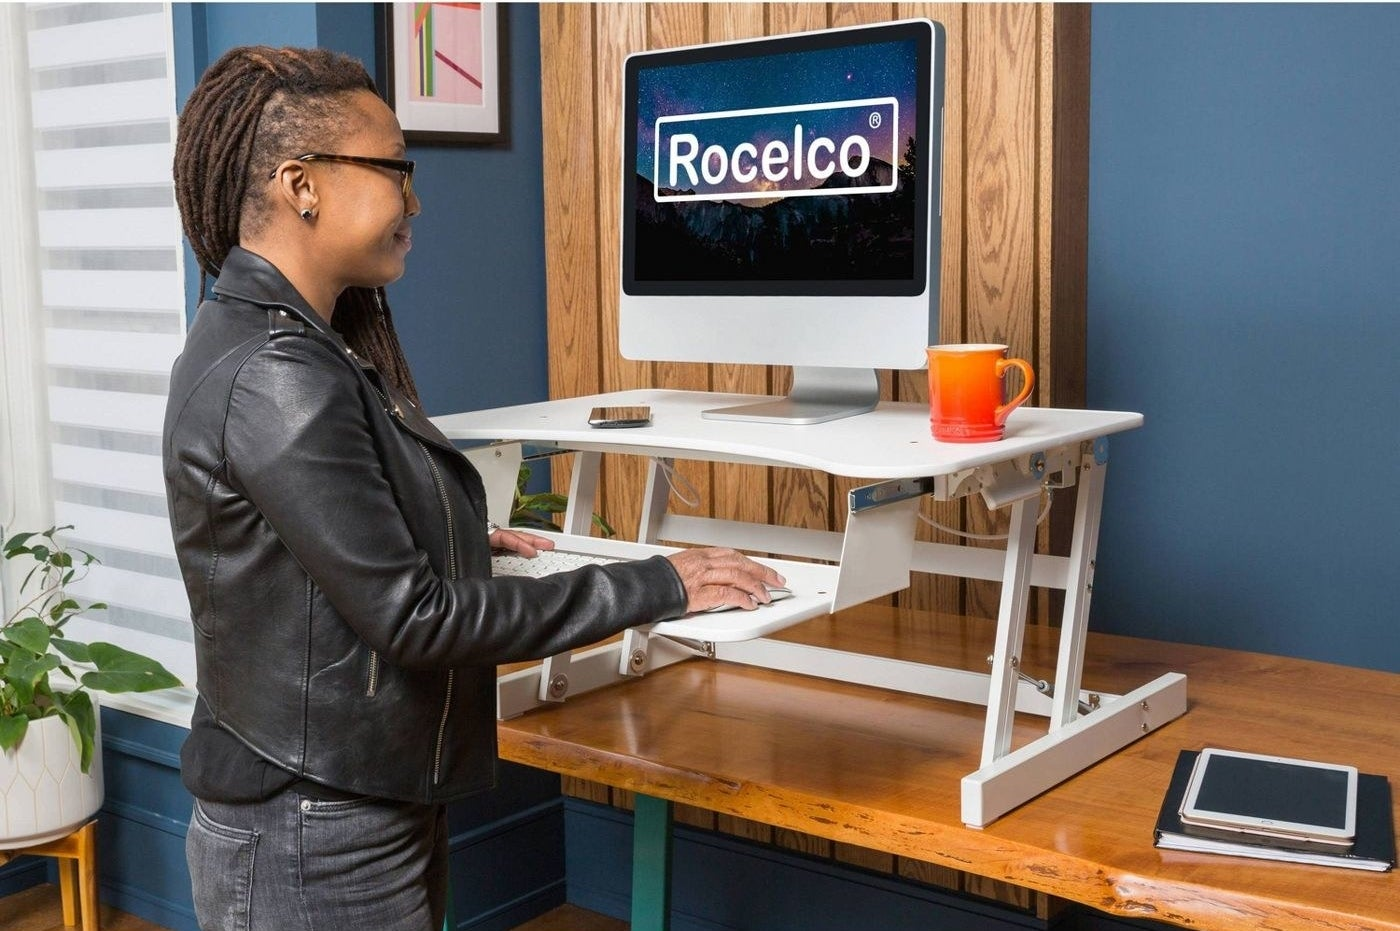 Model works with monitor perched on white standing desk above a wooden desk